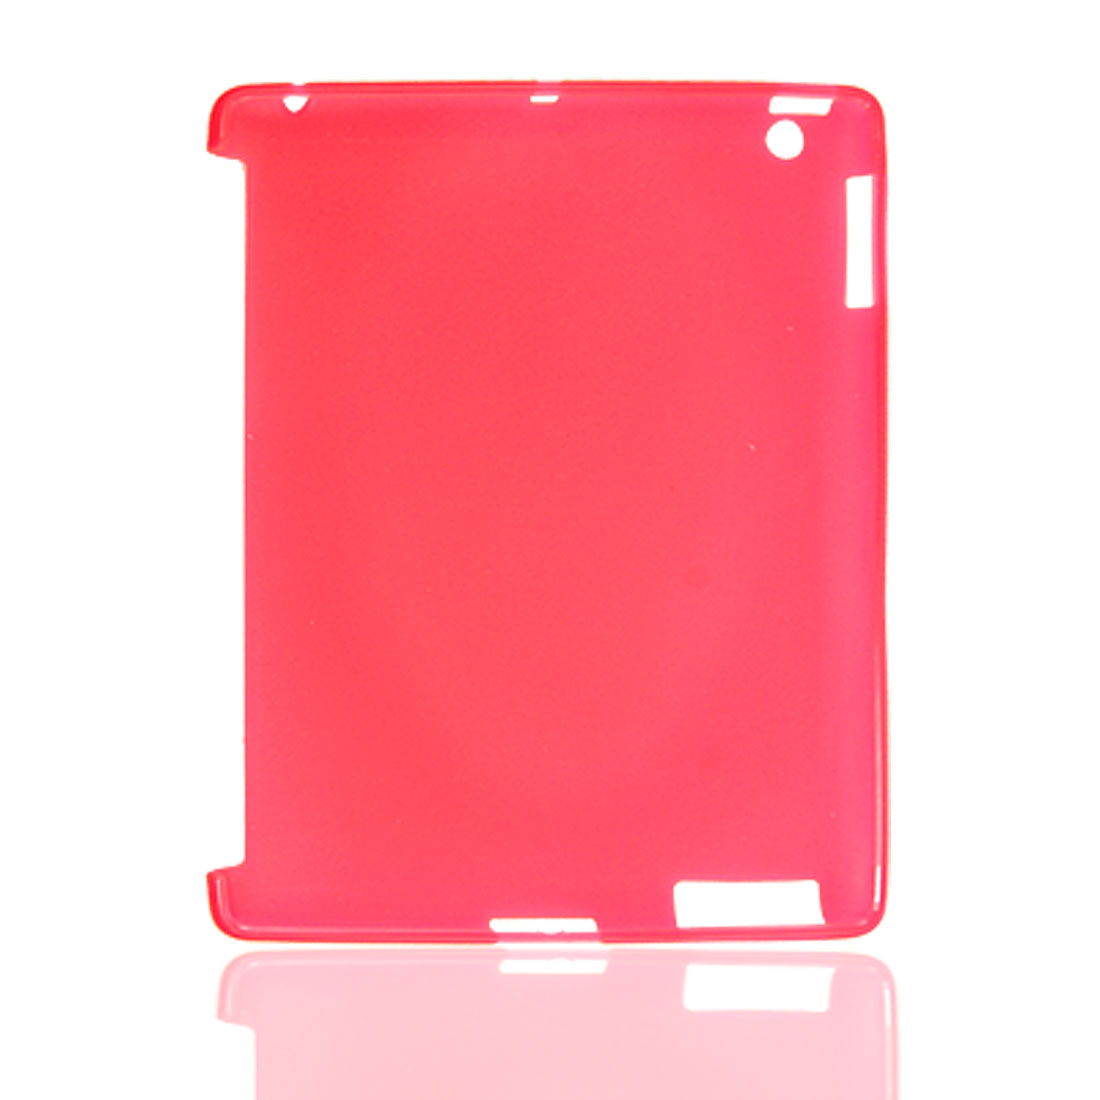 TPU Silicone Hot Pink Back Cover Guard for Apple iPad 2